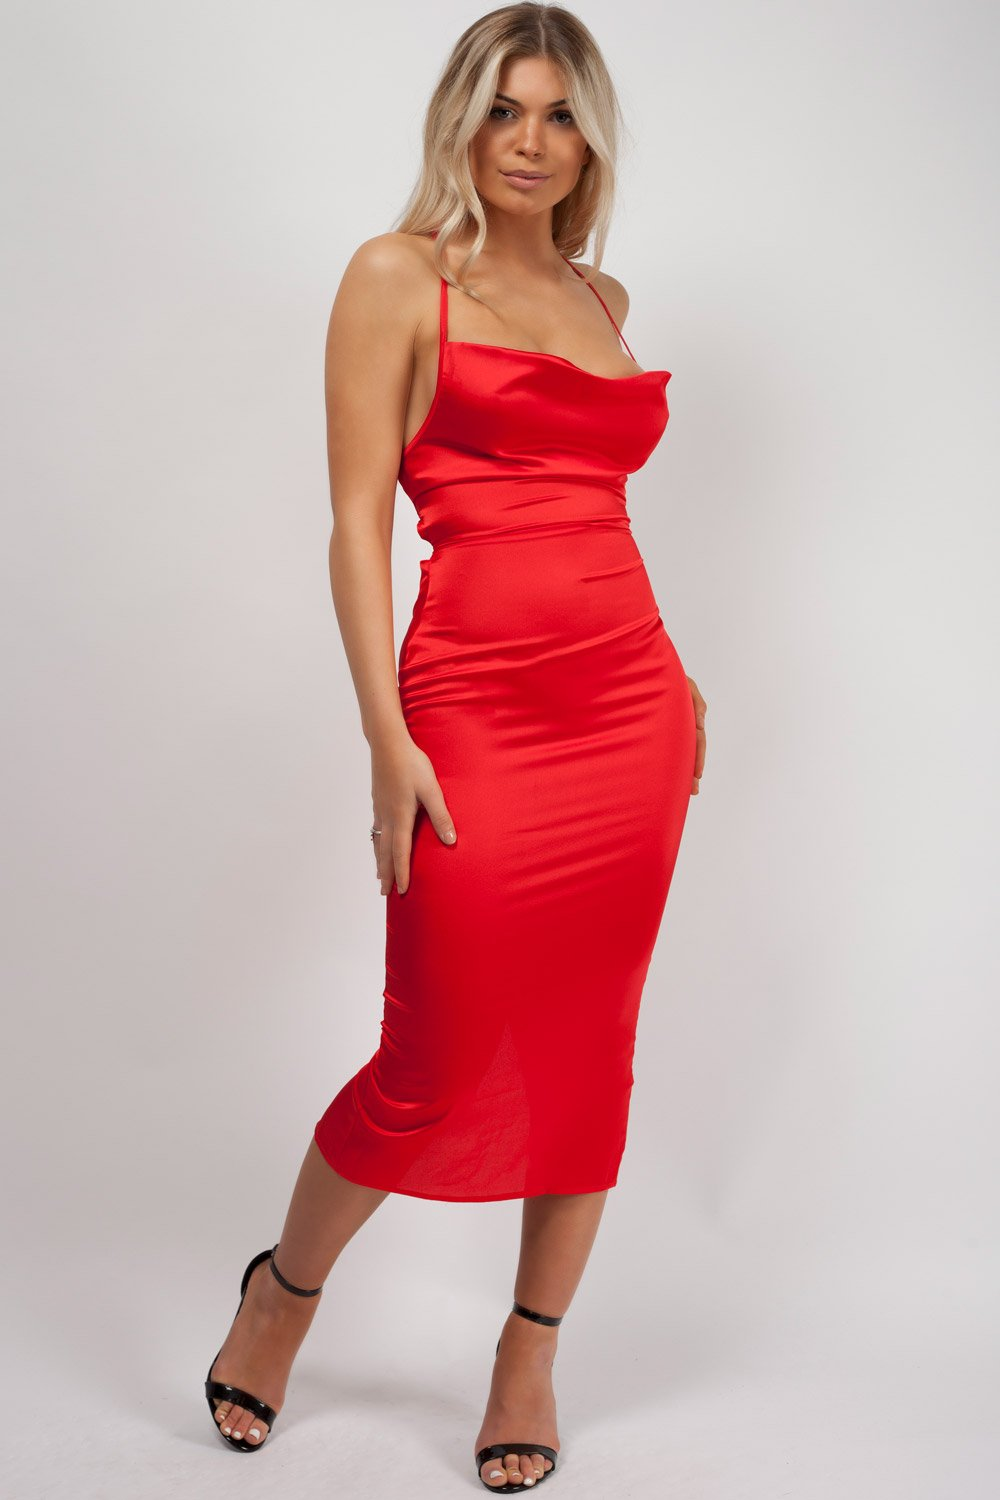 red satin dress styledup fashion